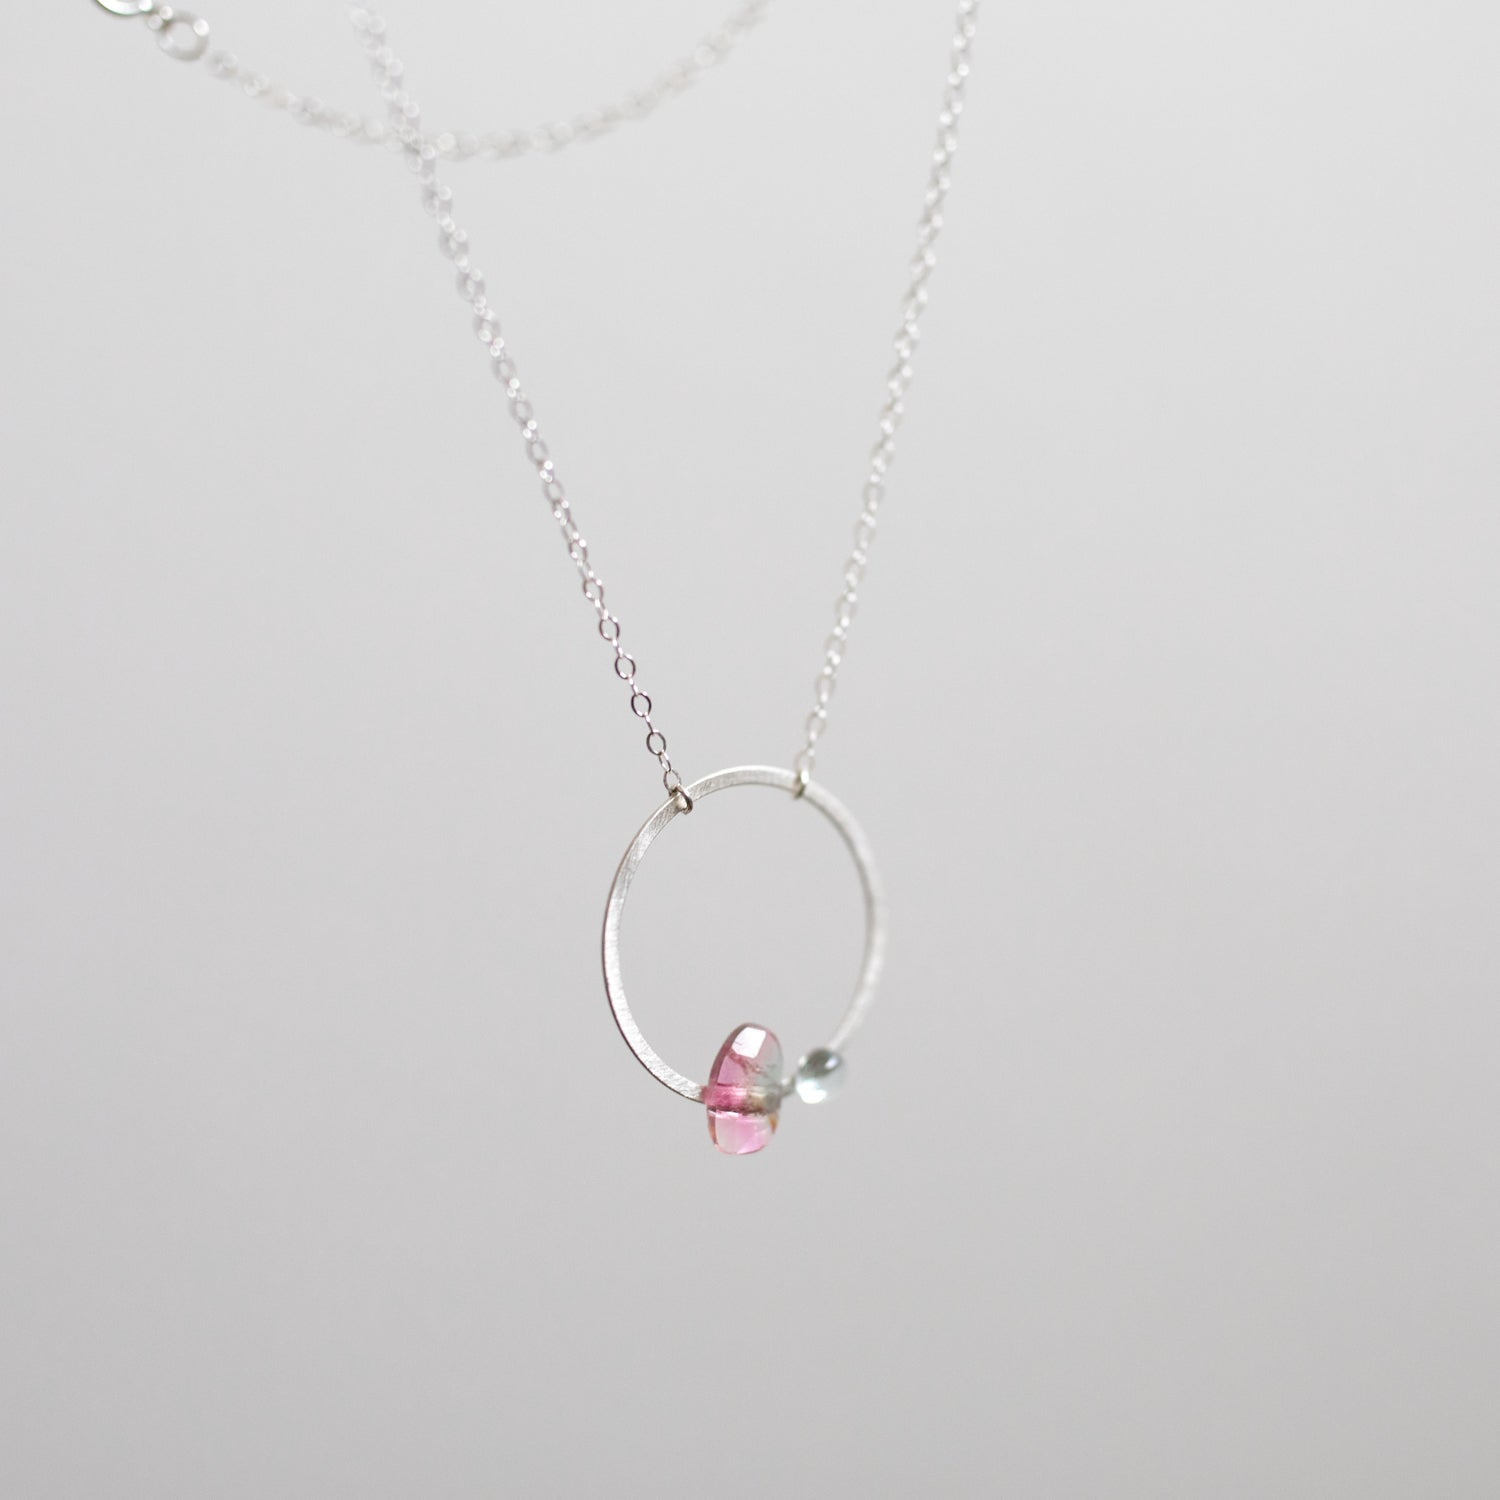 Off to find love silver tourmaline necklace 1